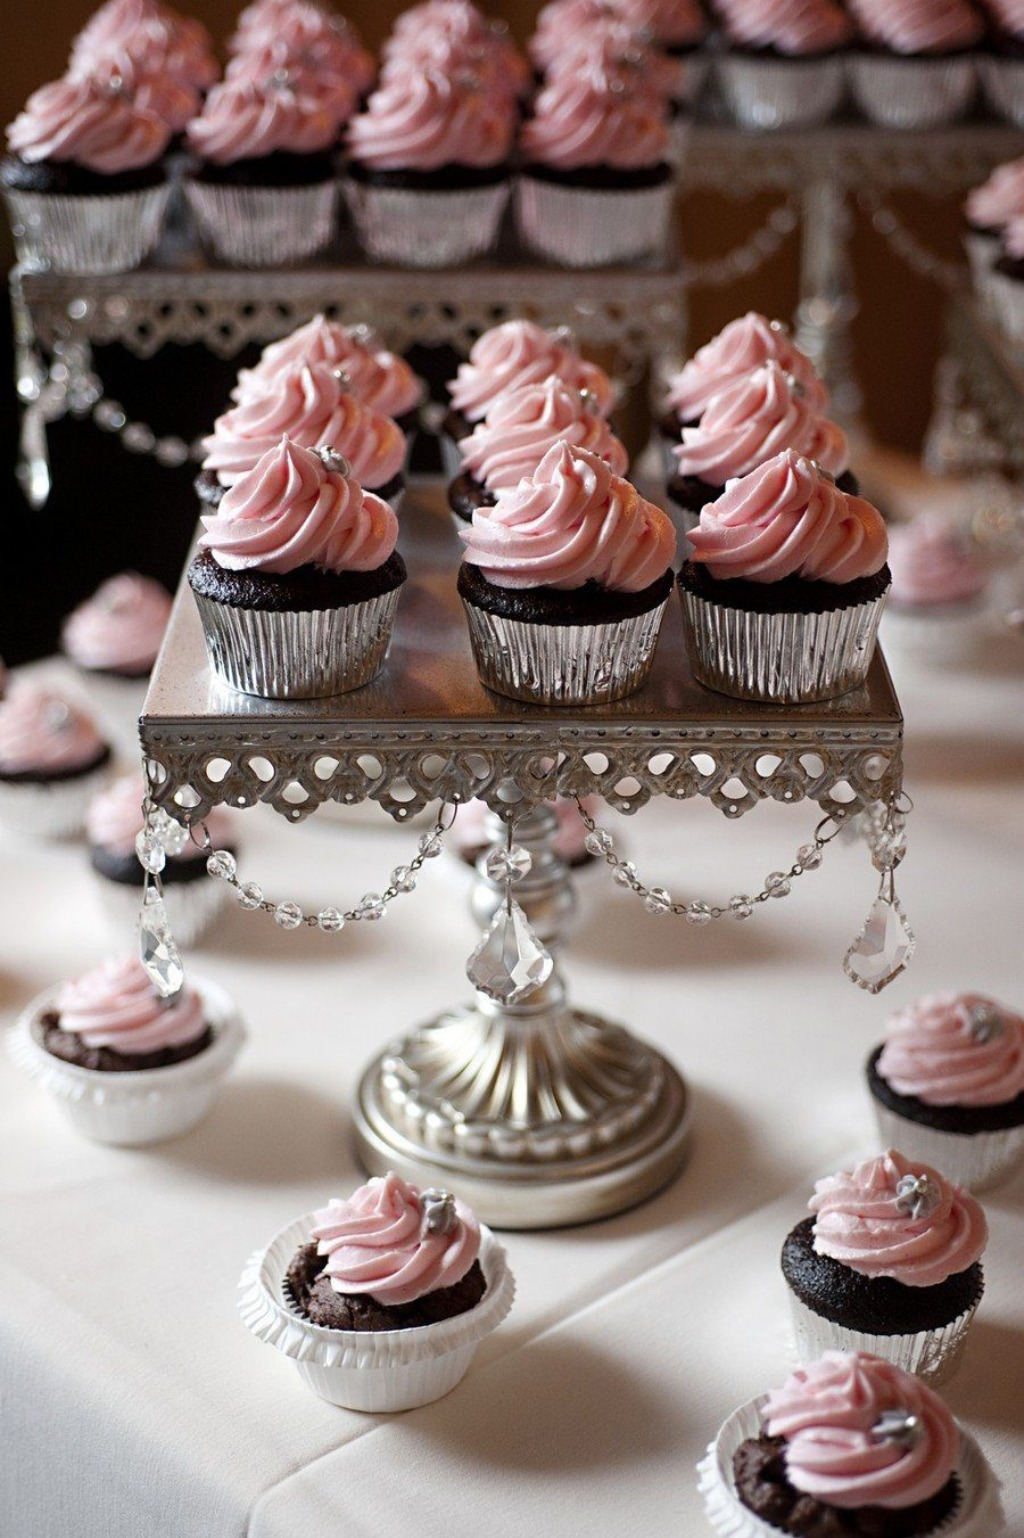 Chandelier Dessert Stands created by Opulent Treasures with LOVE! Cupcakes: Iced Cupcakery // Photo by Patti Miller Photography